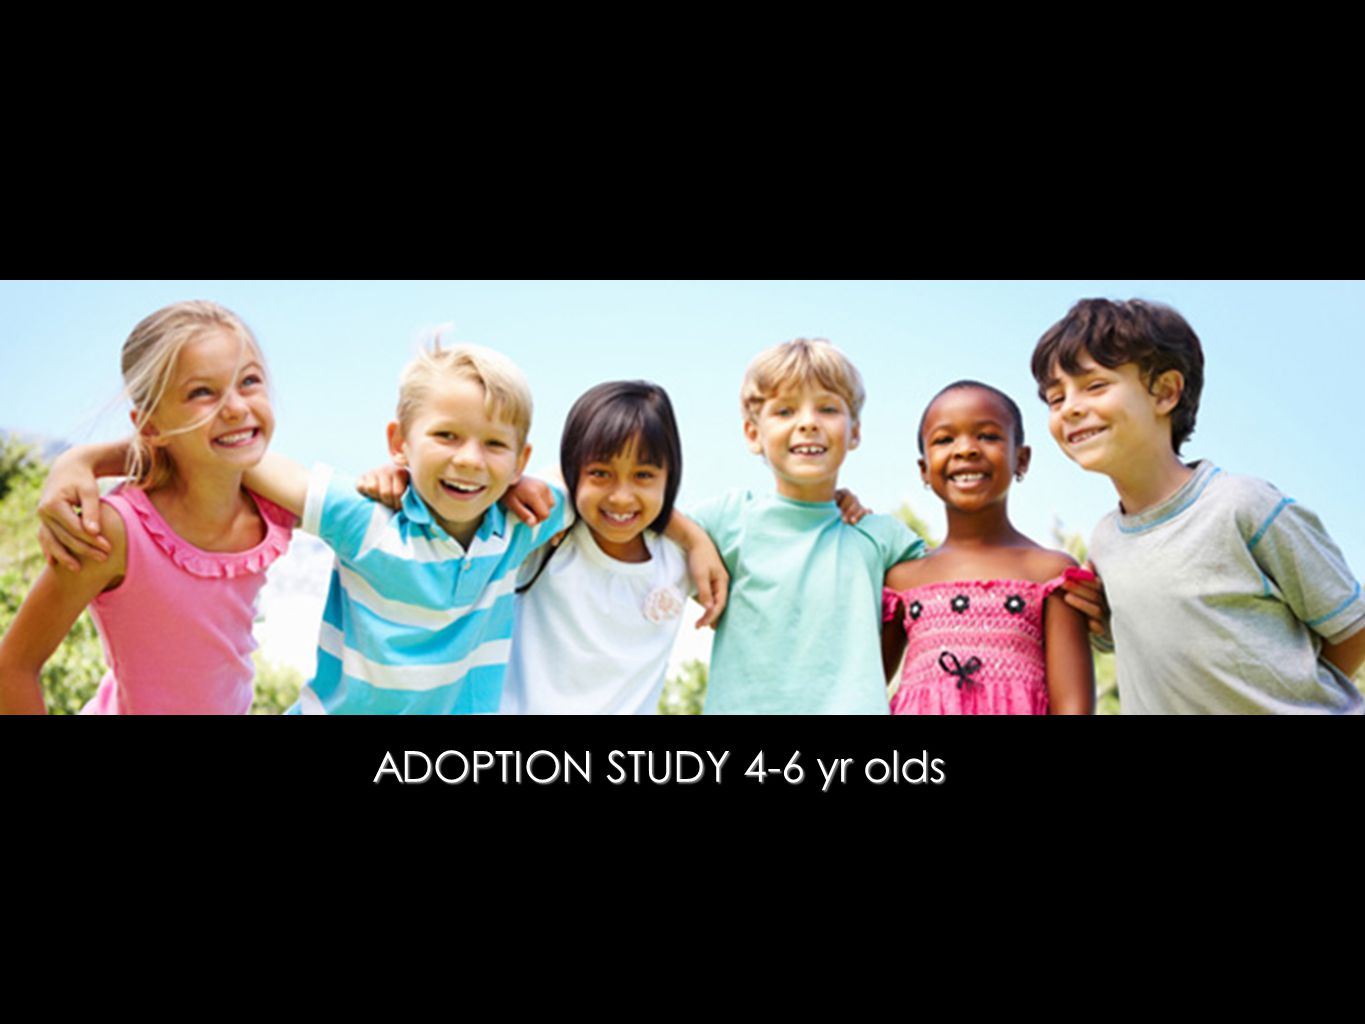 ADOPTION STUDY 4-6 yr olds